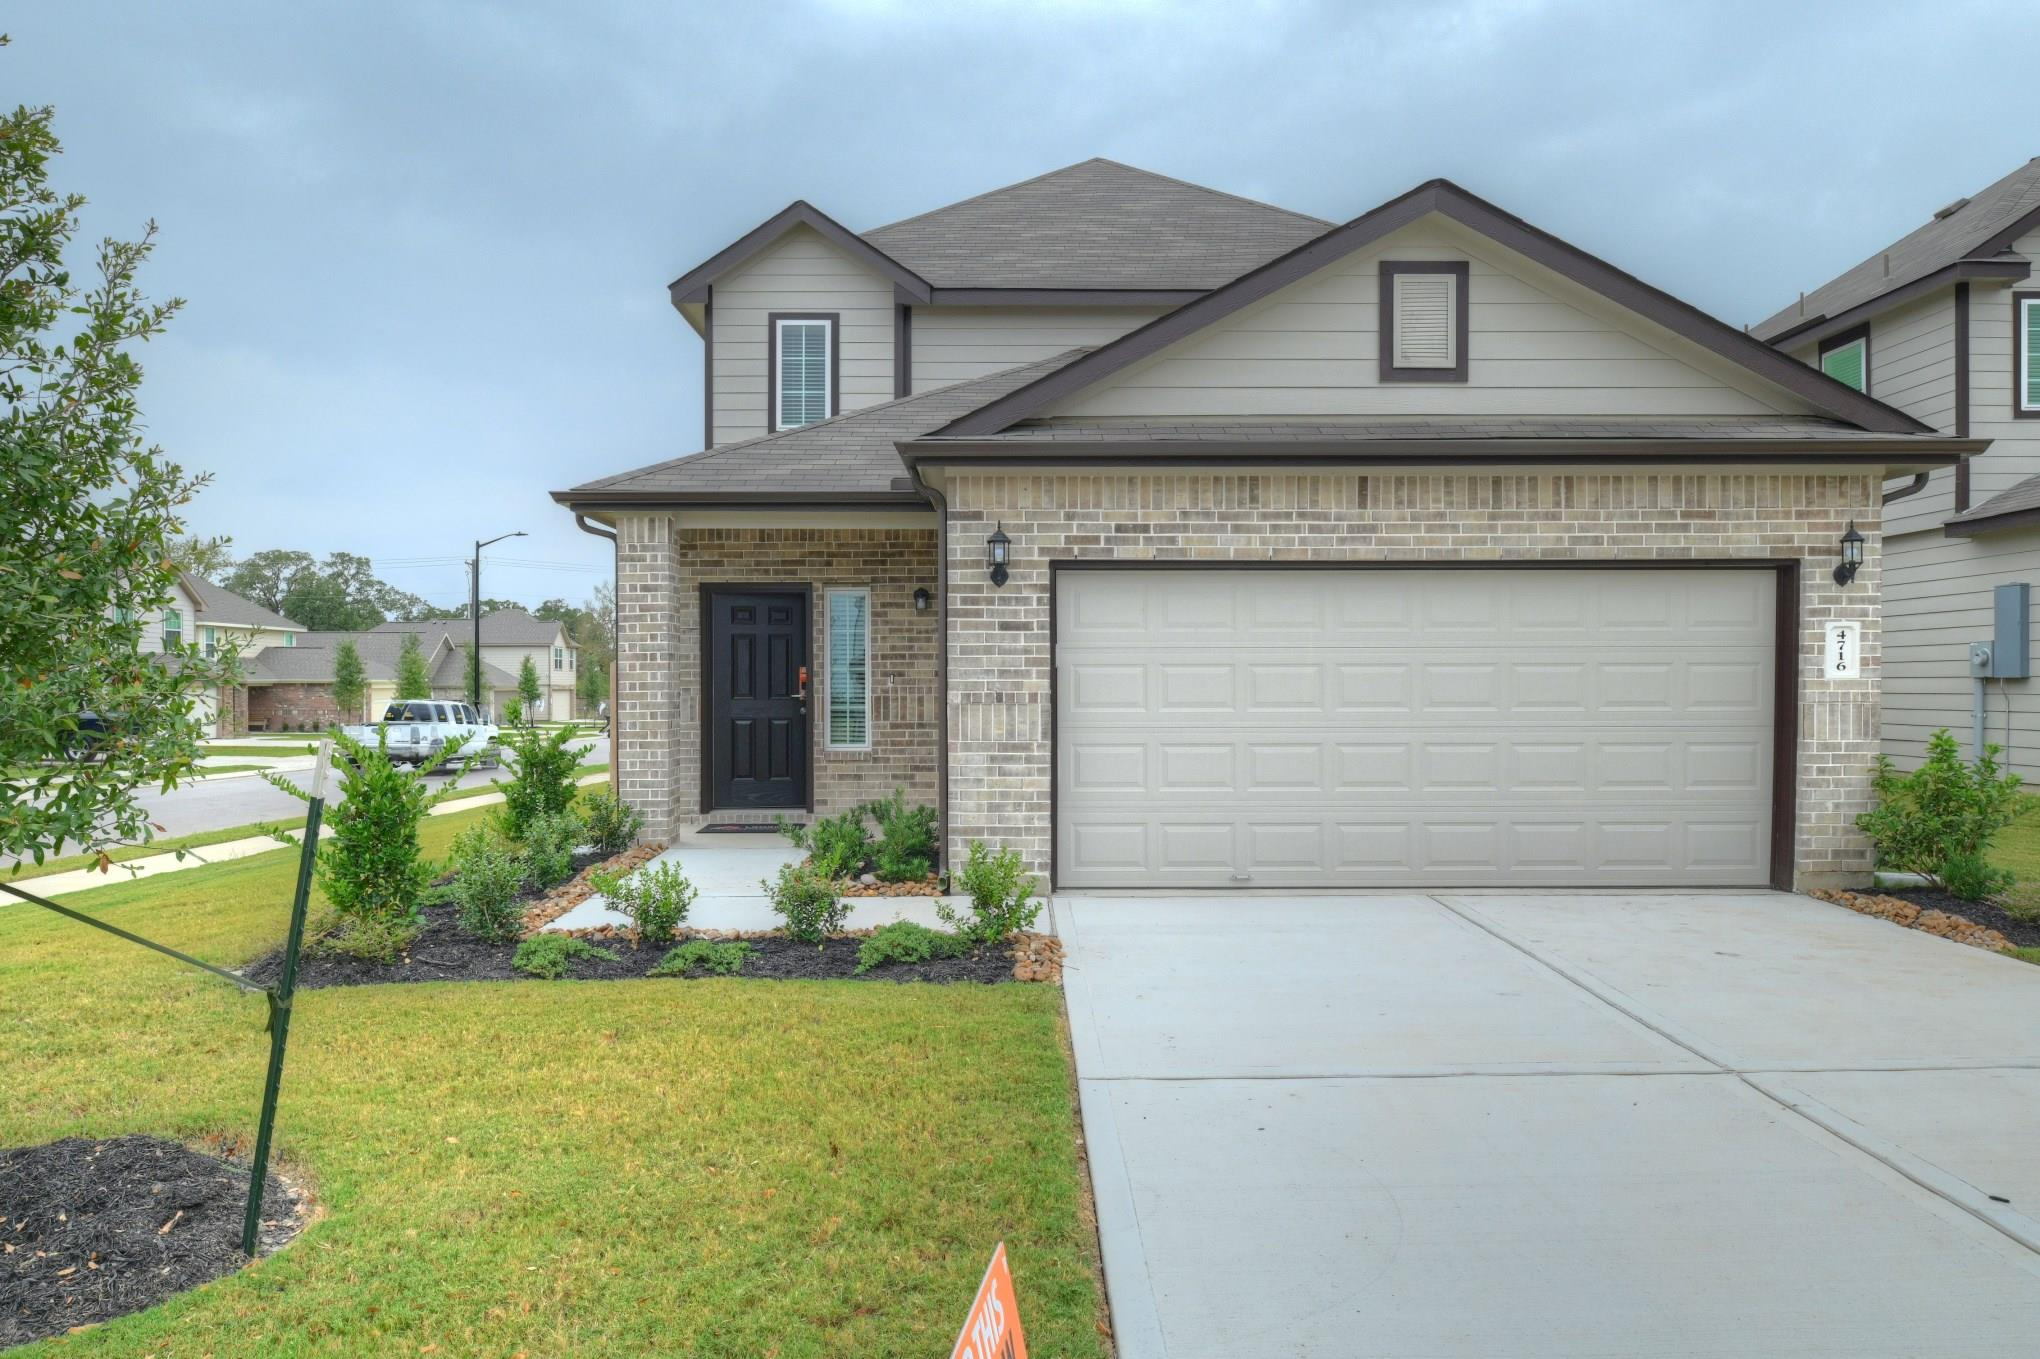 4716 Los Pines Way Property Photo - Bryan, TX real estate listing